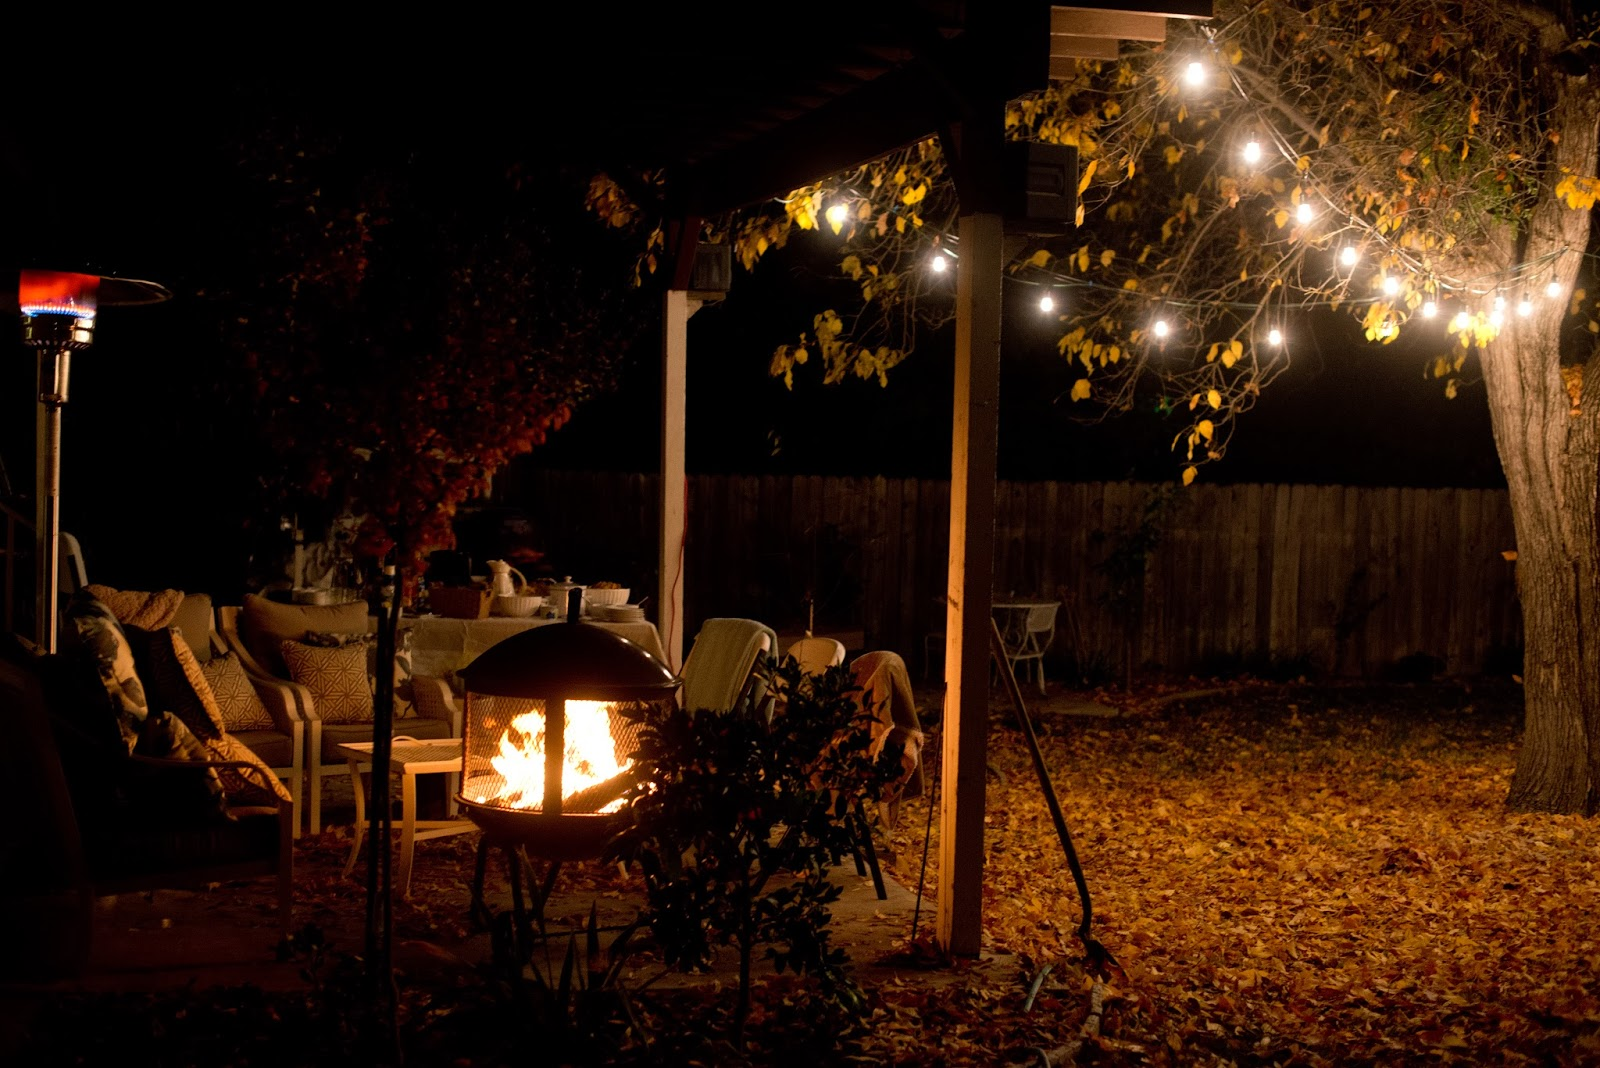 Autumn Night Fire Pit : Domestic fashionista backyard fire pit and game night